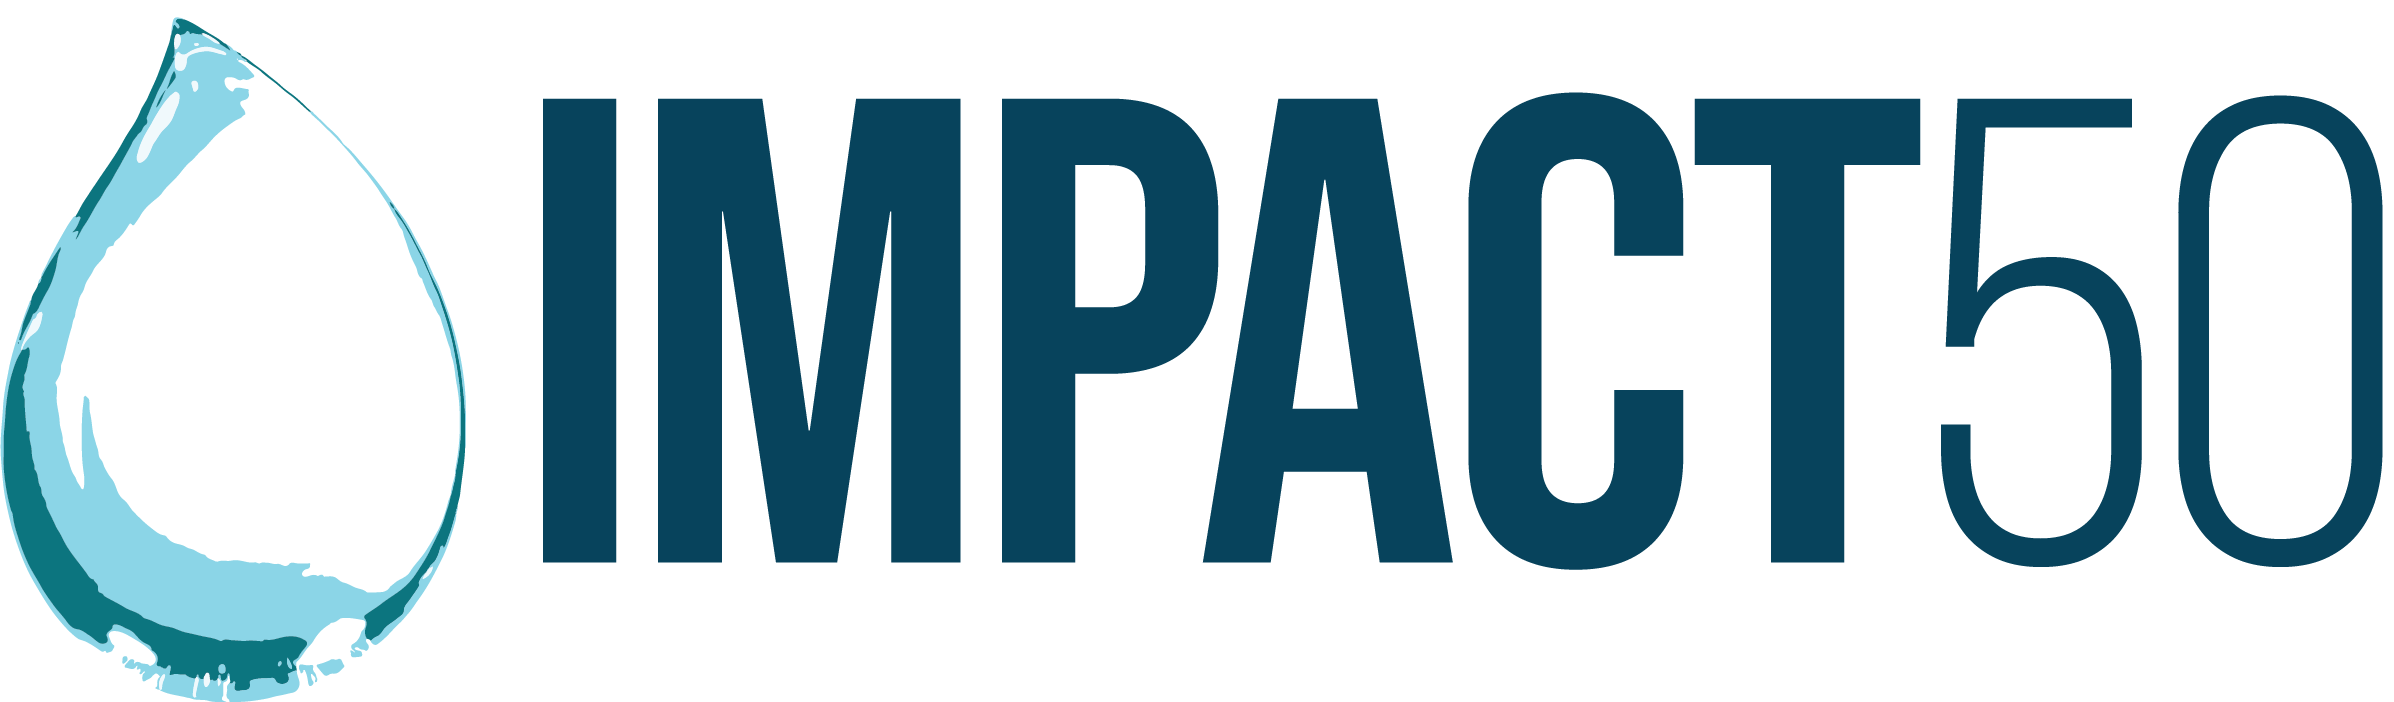 Impact50officiallogo.png